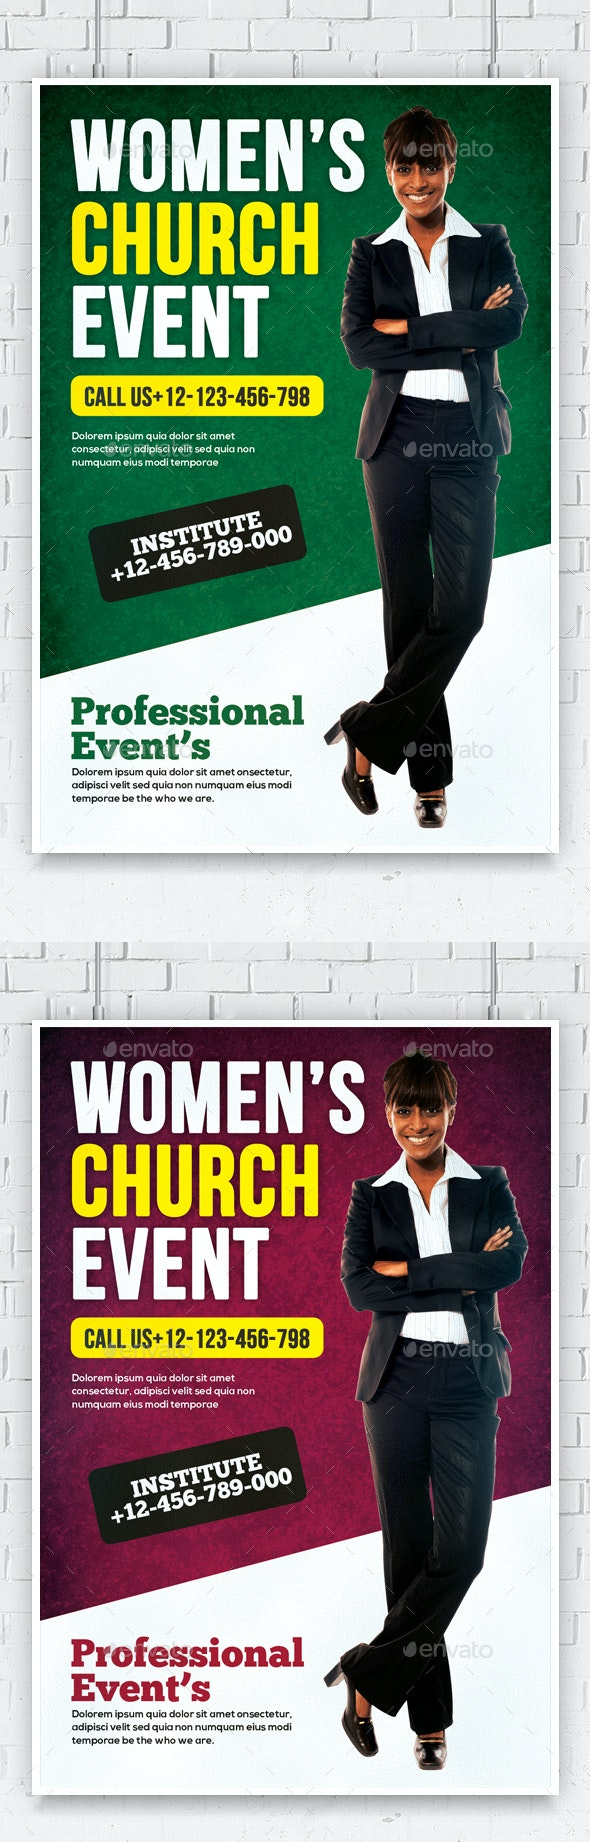 Women Conference Flyer Template - Church Flyers